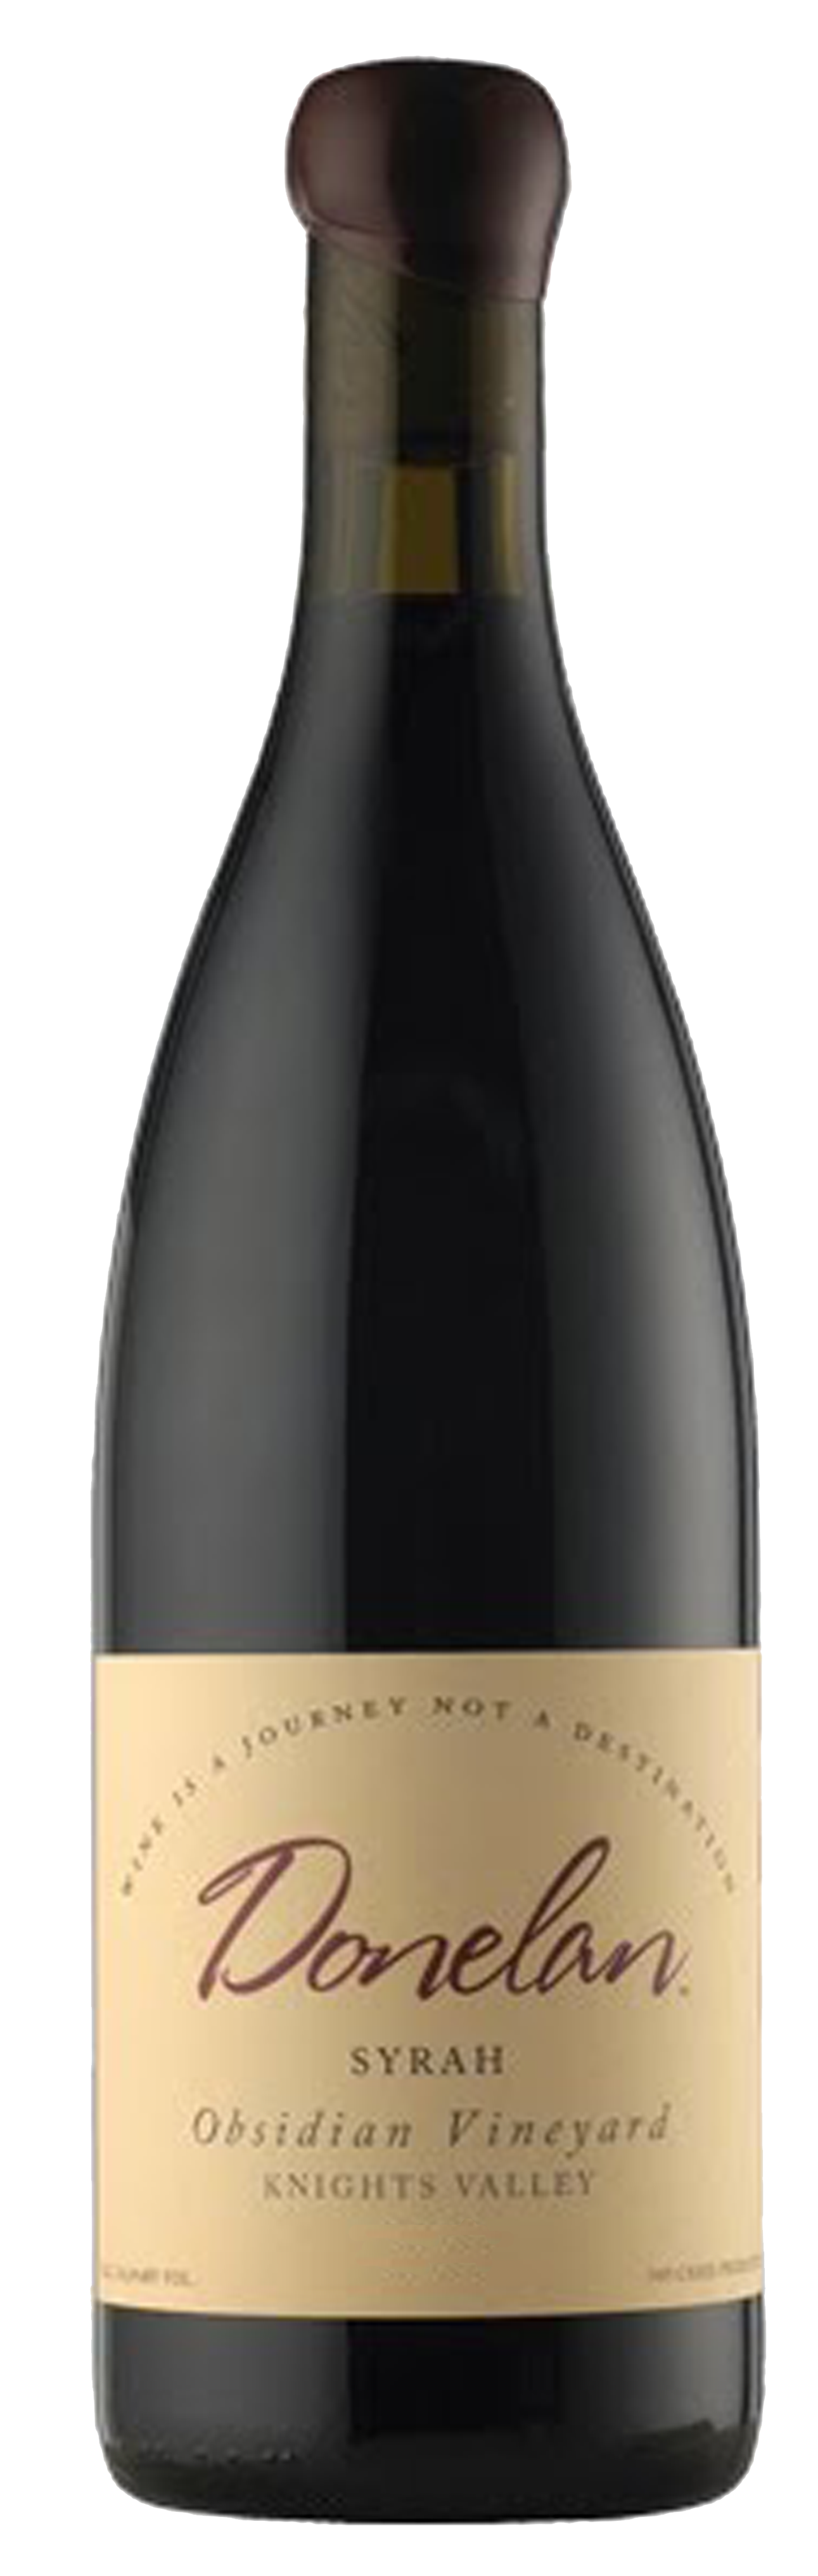 Image of product Obsidian Vineyard Syrah